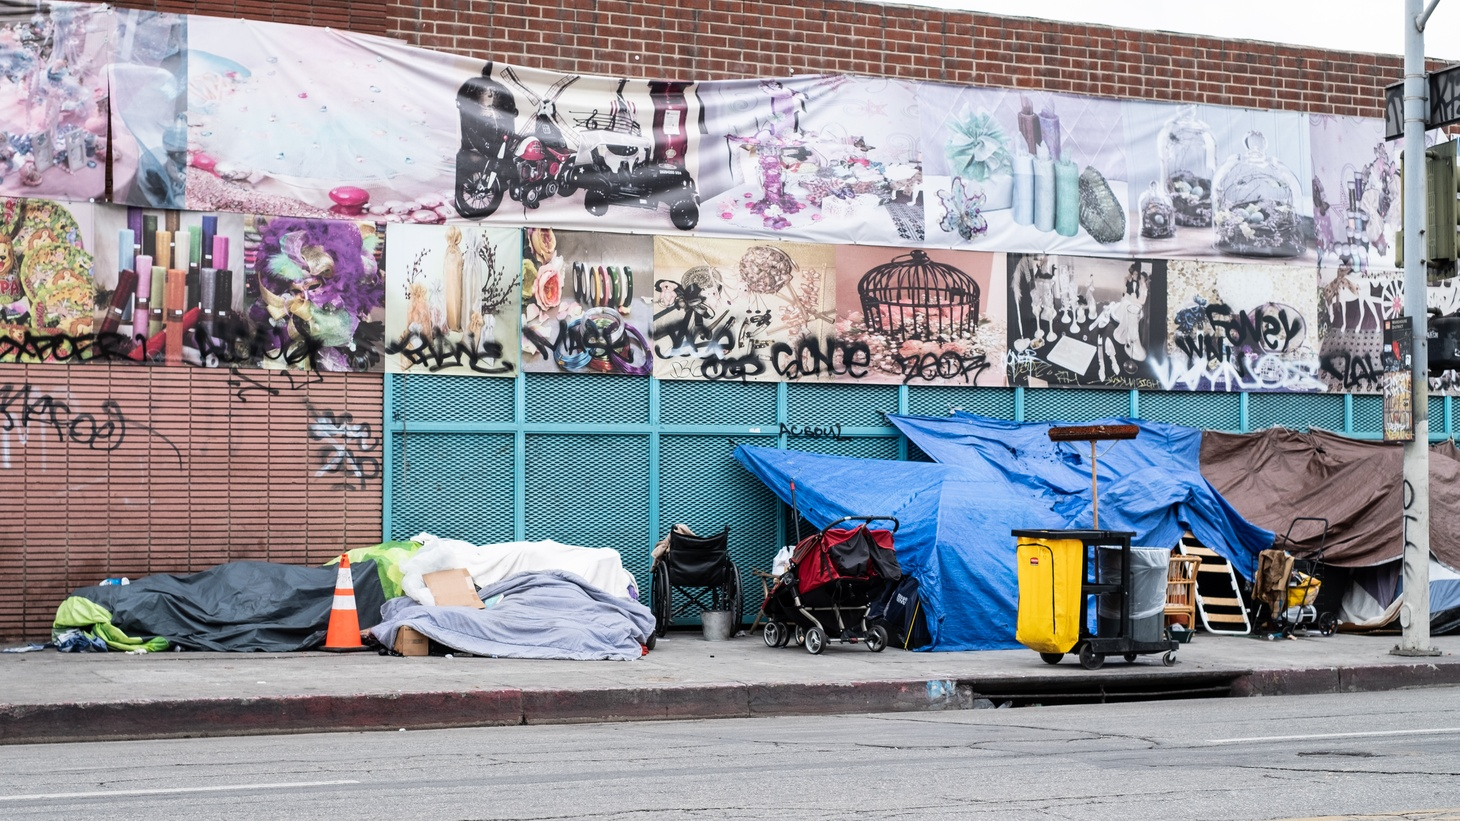 More than 600 unhoused people have died across LA County this year.